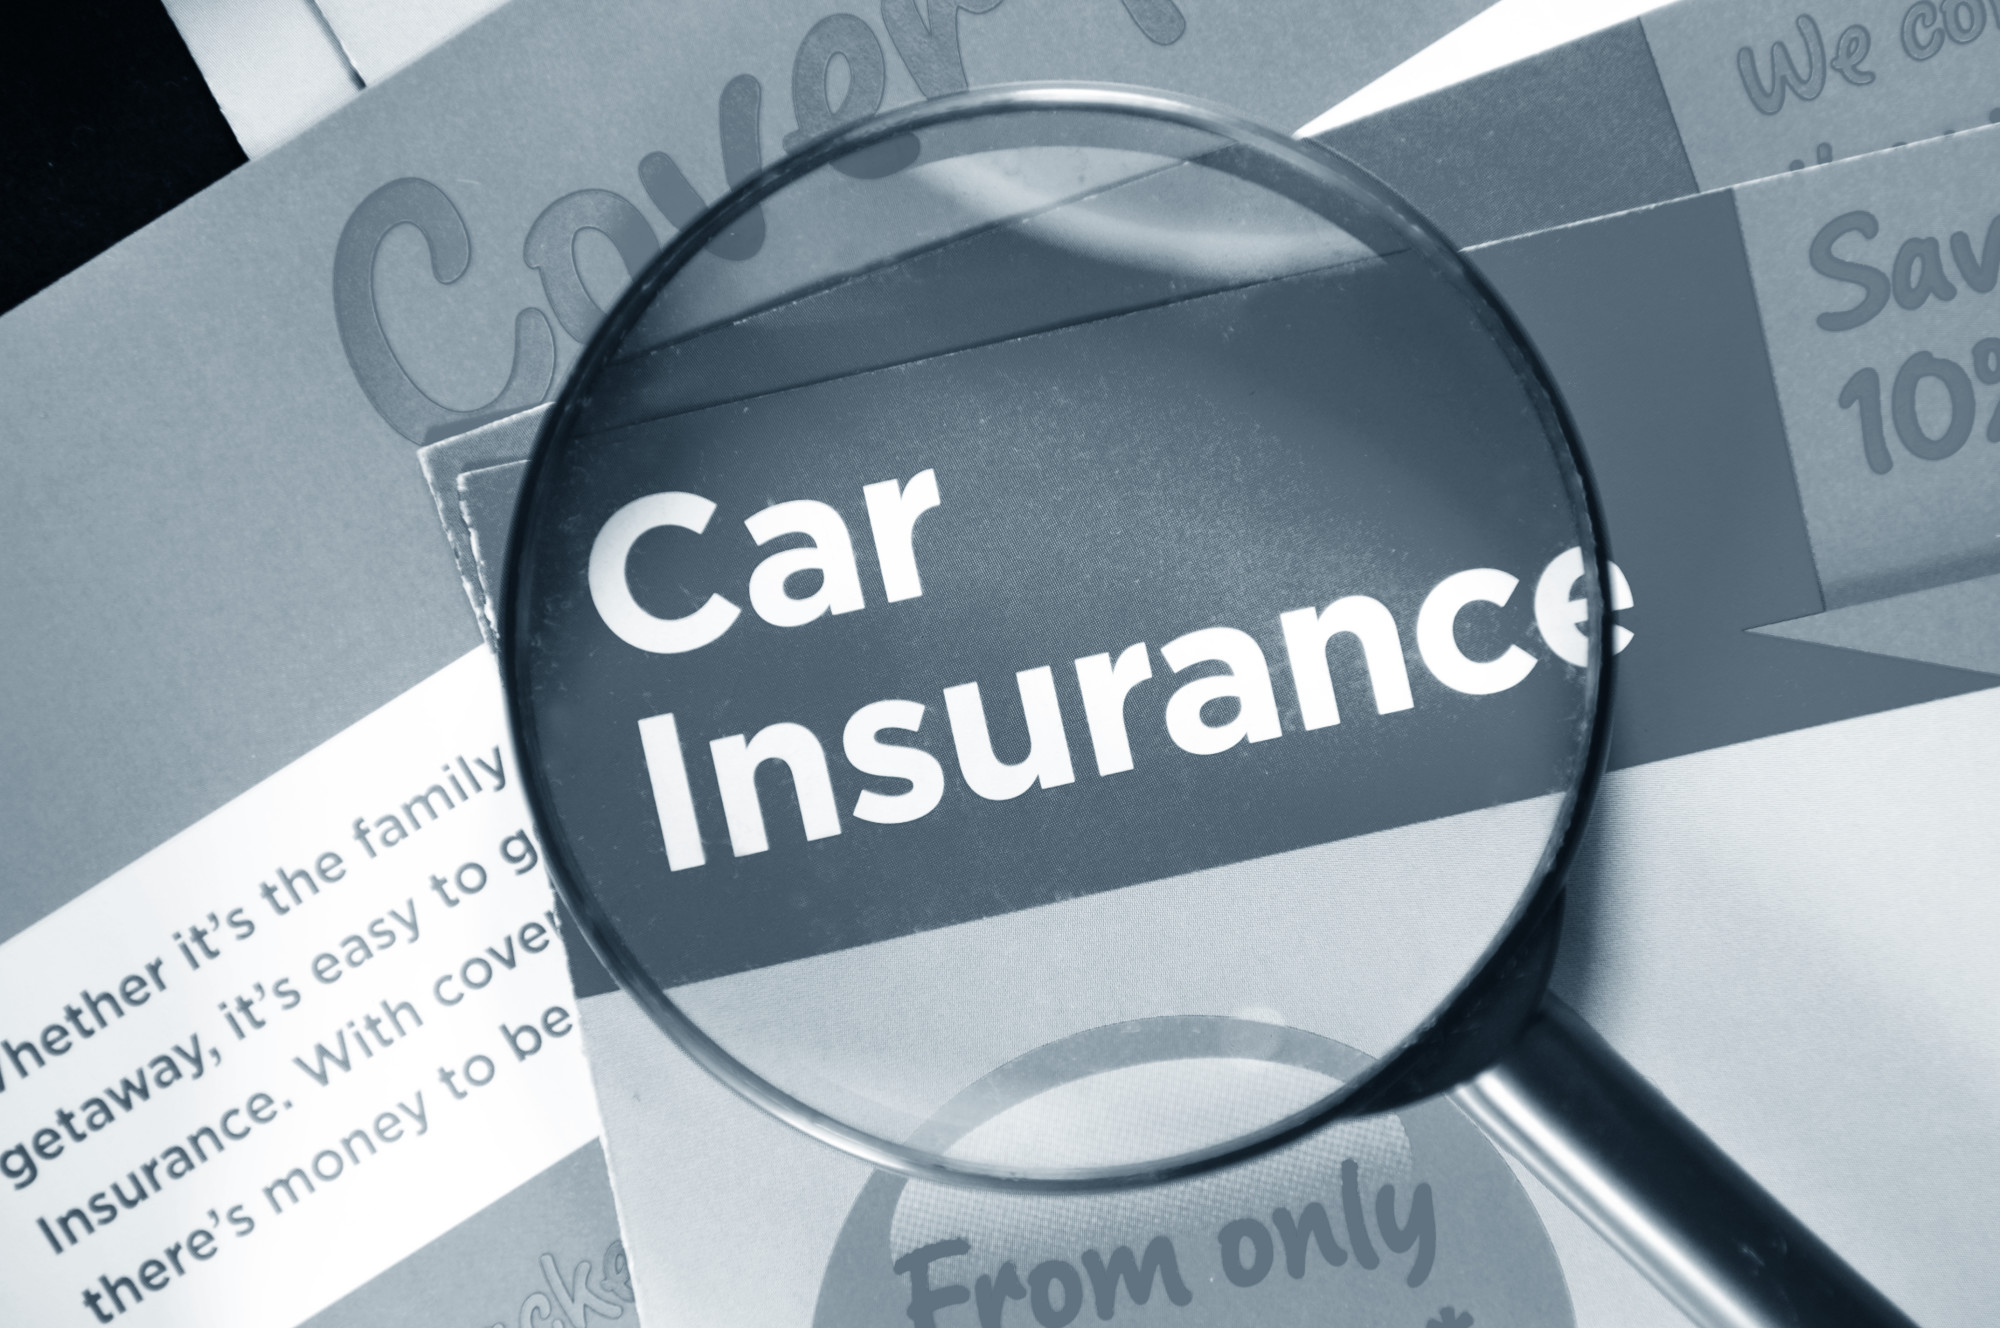 magnifying glass on top of car insurance title on a brochure